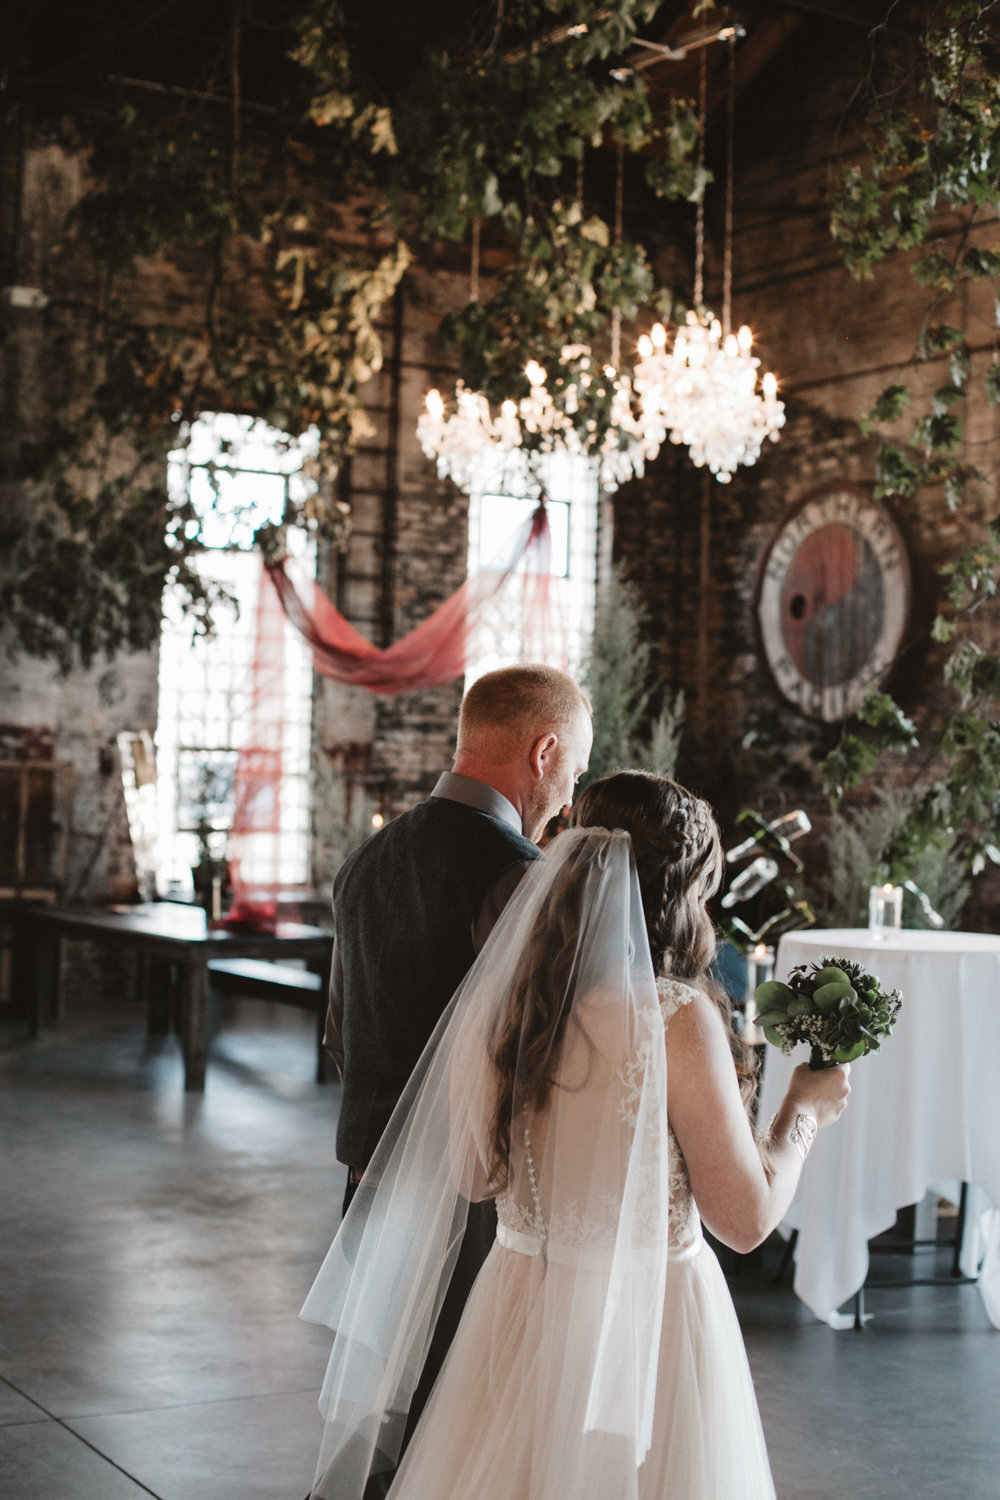 Indoor wedding ceremony at the NP Event Space. Photography by Britt DeZeeuw, natural light photographer.